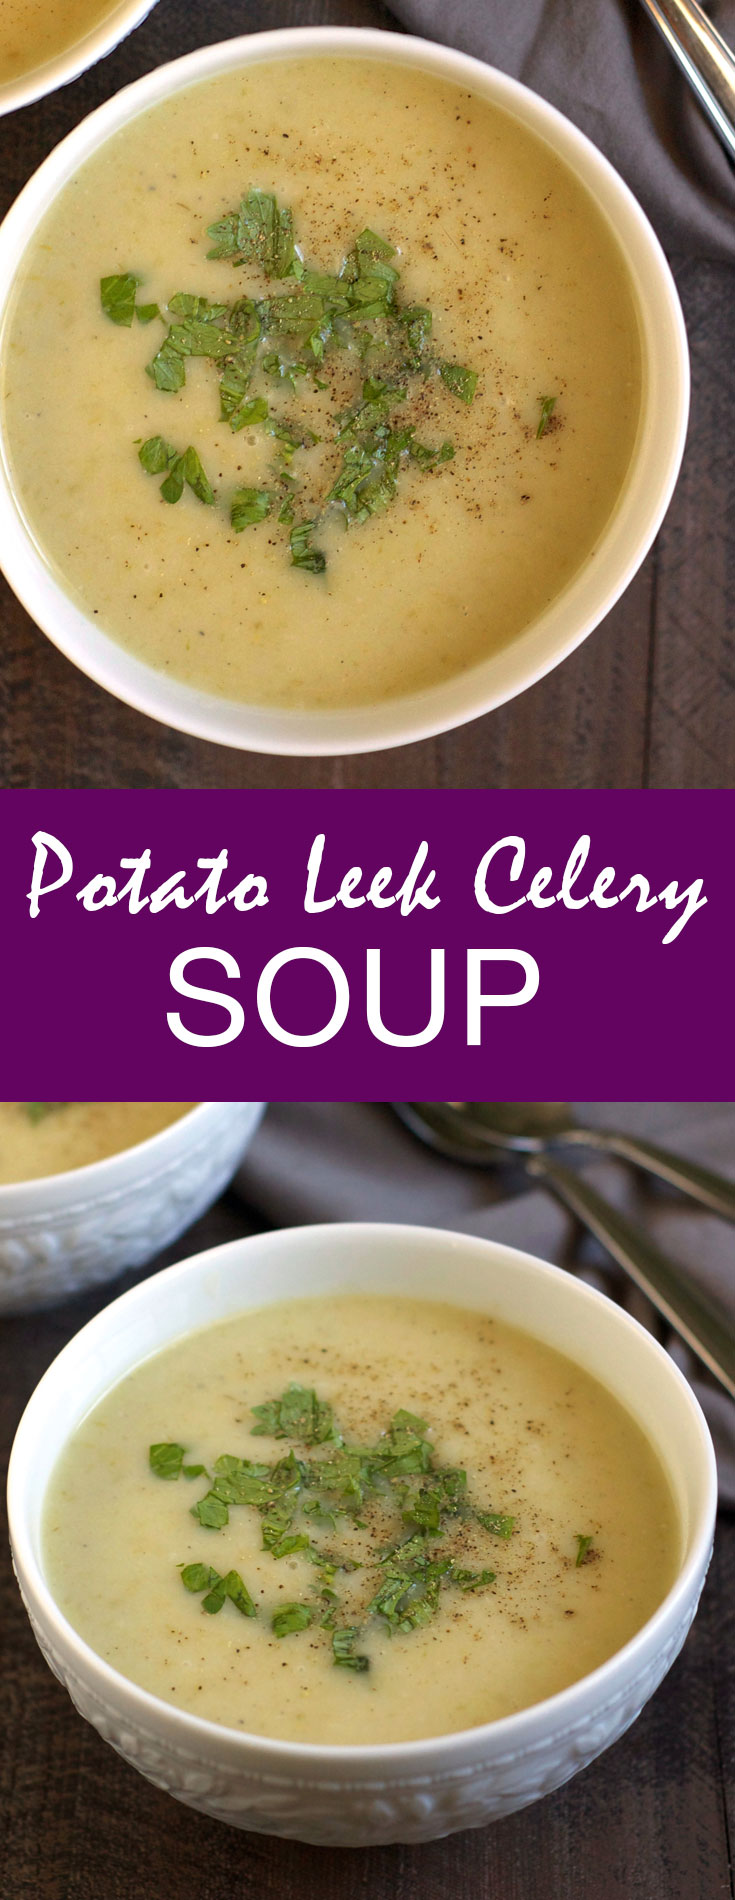 This Potato Leek Celery Soup is so creamy and comforting! Quick, simple, and freezer-friendly, it's the perfect weeknight cold weather meal.